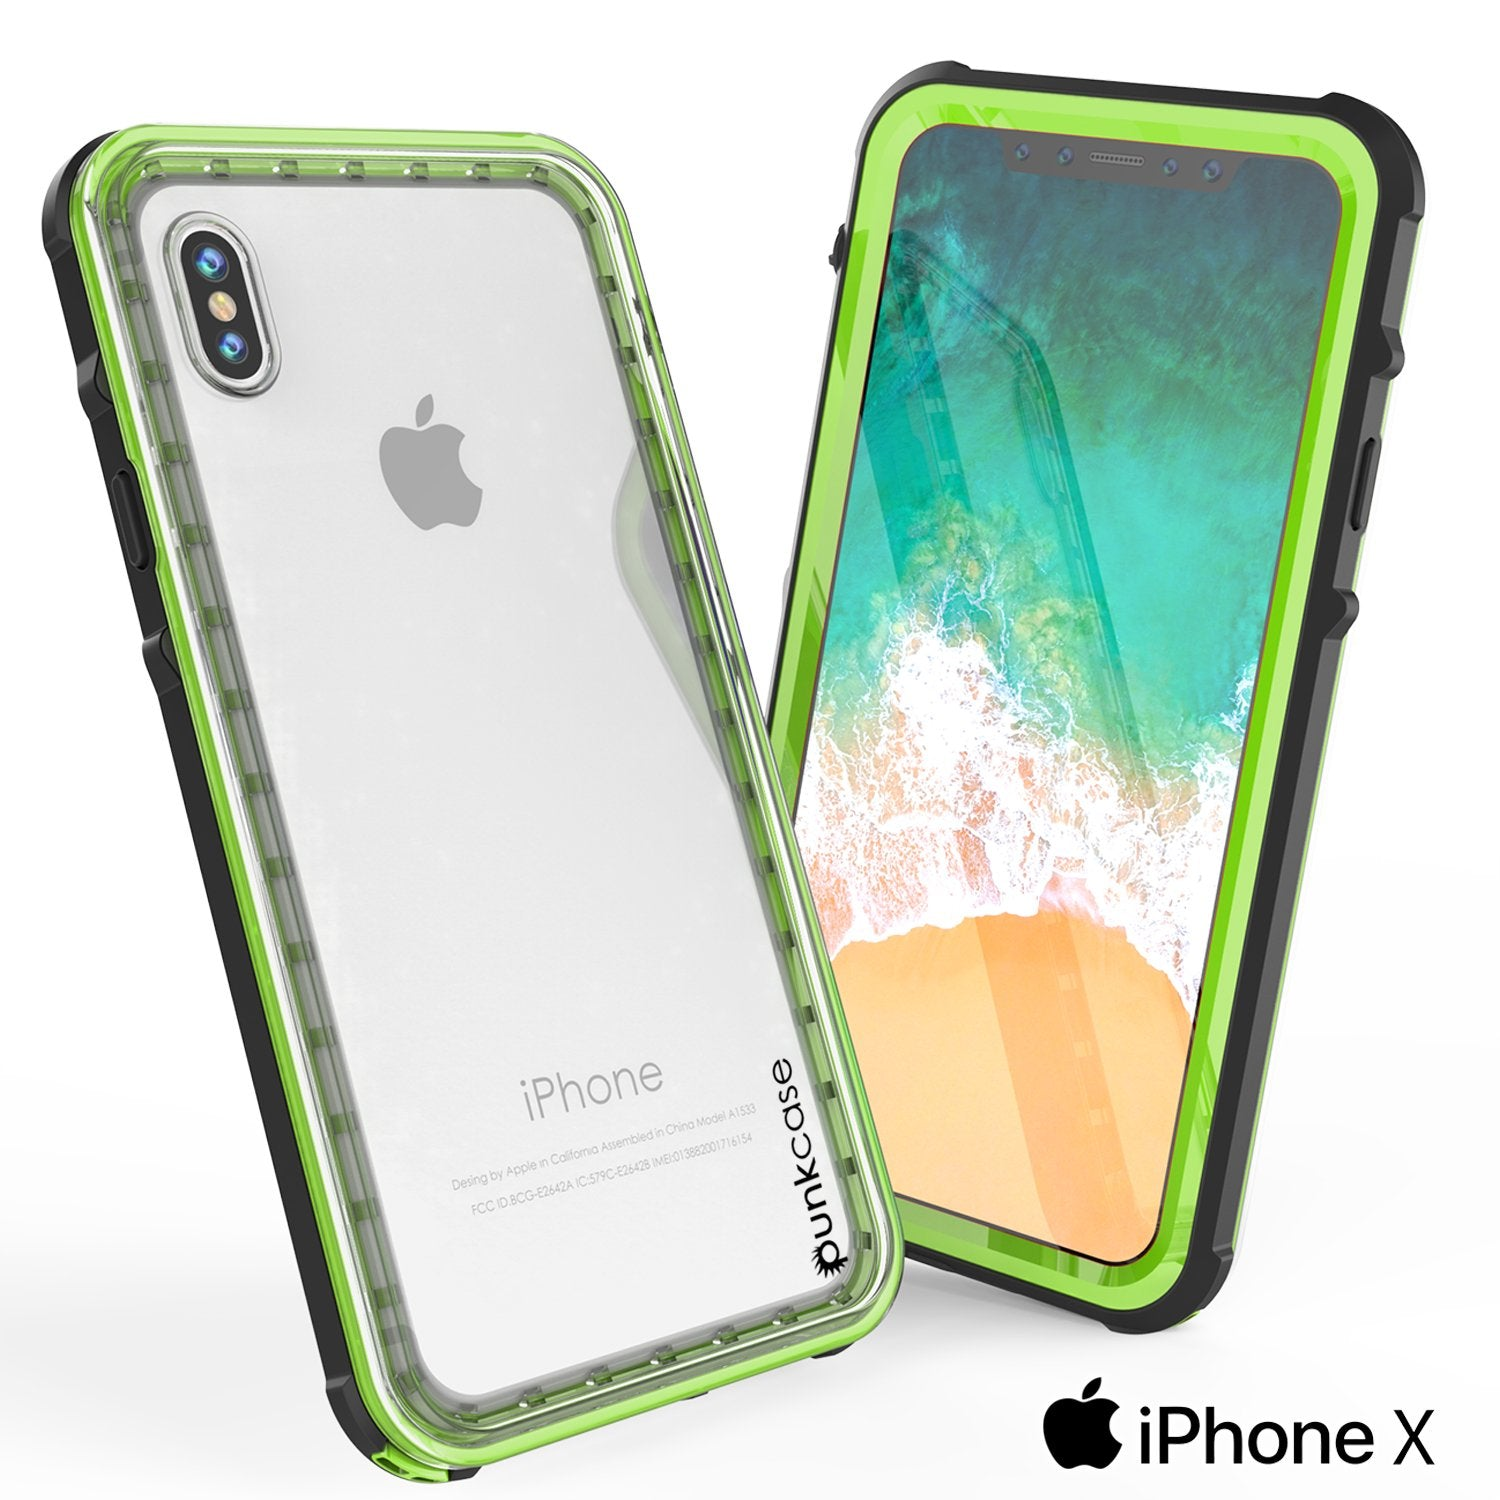 iPhone X Case, PUNKCase [CRYSTAL SERIES] Protective IP68 Certified Cover W/ Attached Screen Protector [LIGHT GREEN]